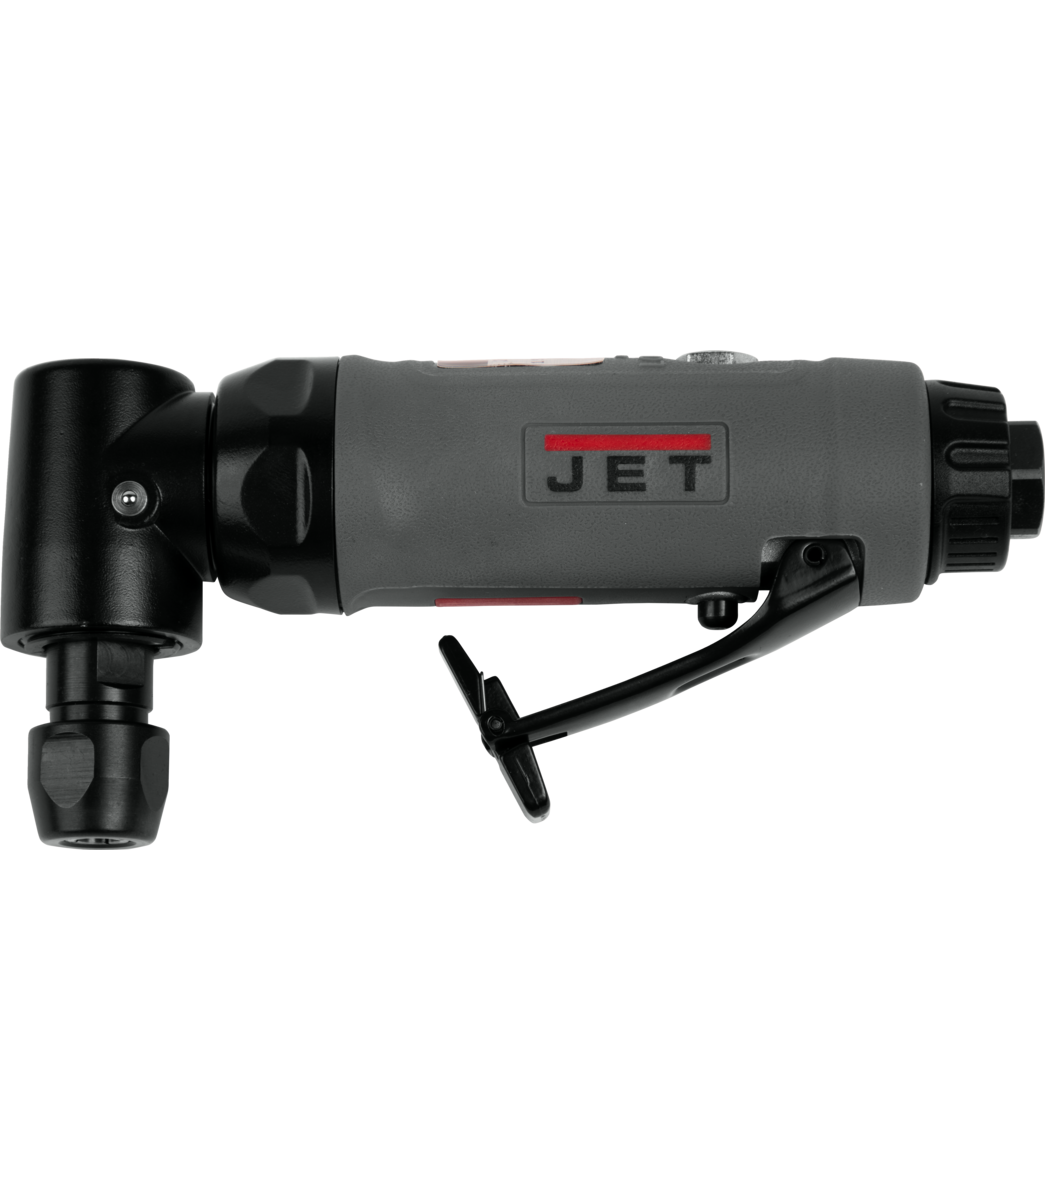 "JAT-415, 1/4"" Right Angle Composite Die Grinder"